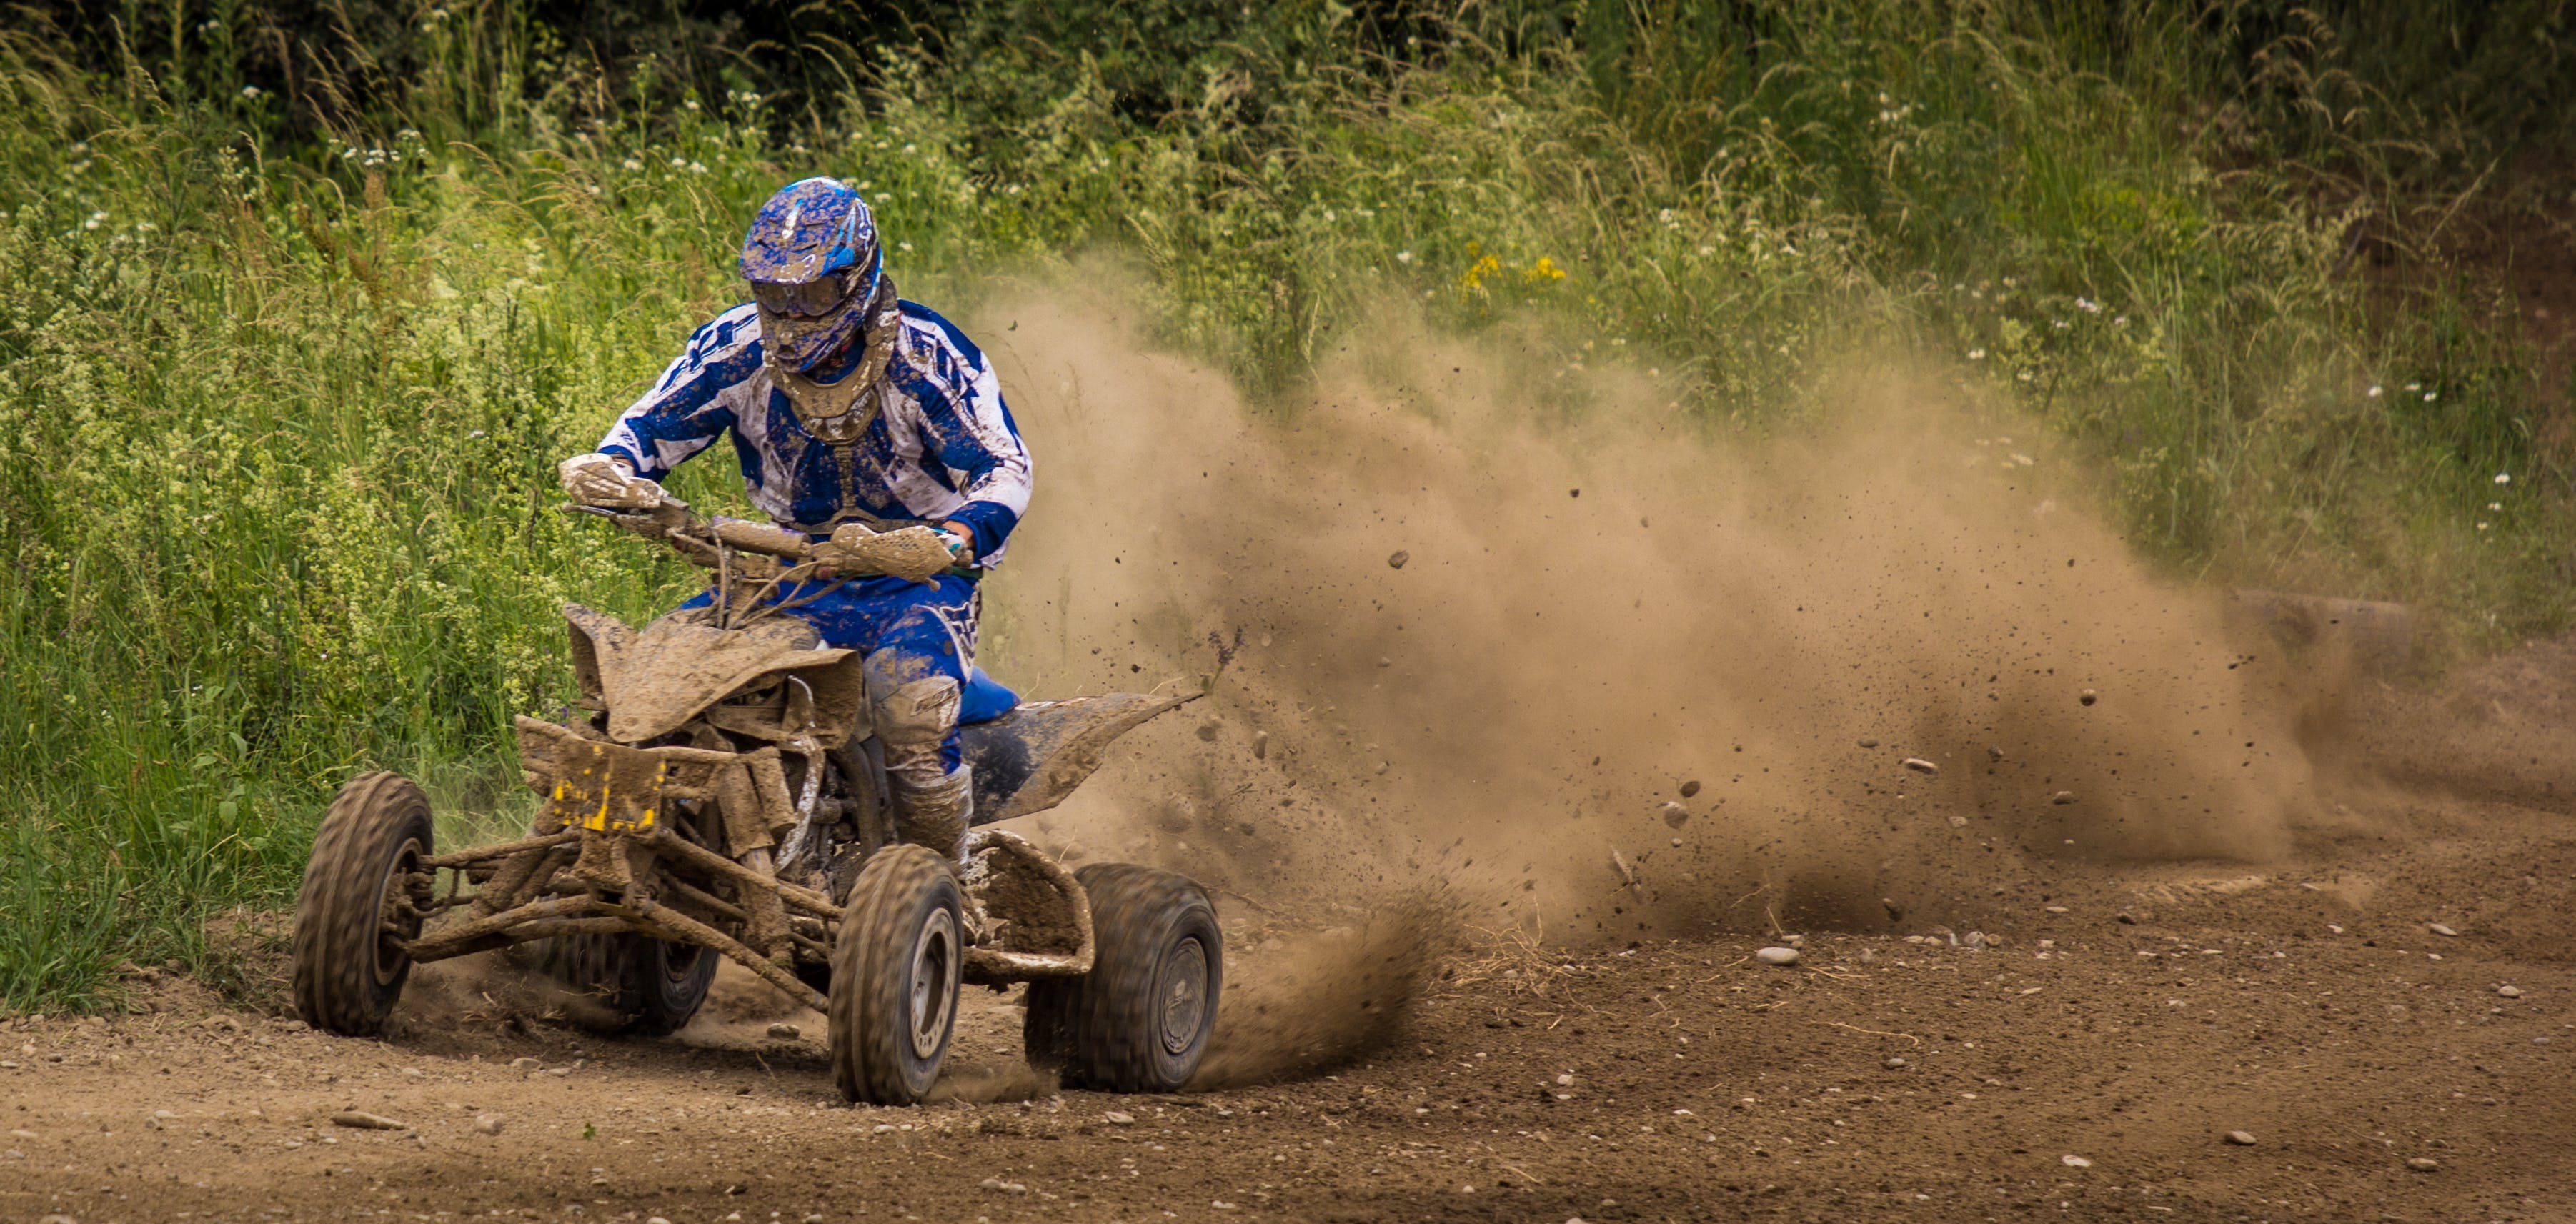 Free stock photo of motocross, motor racing, quad, terrain